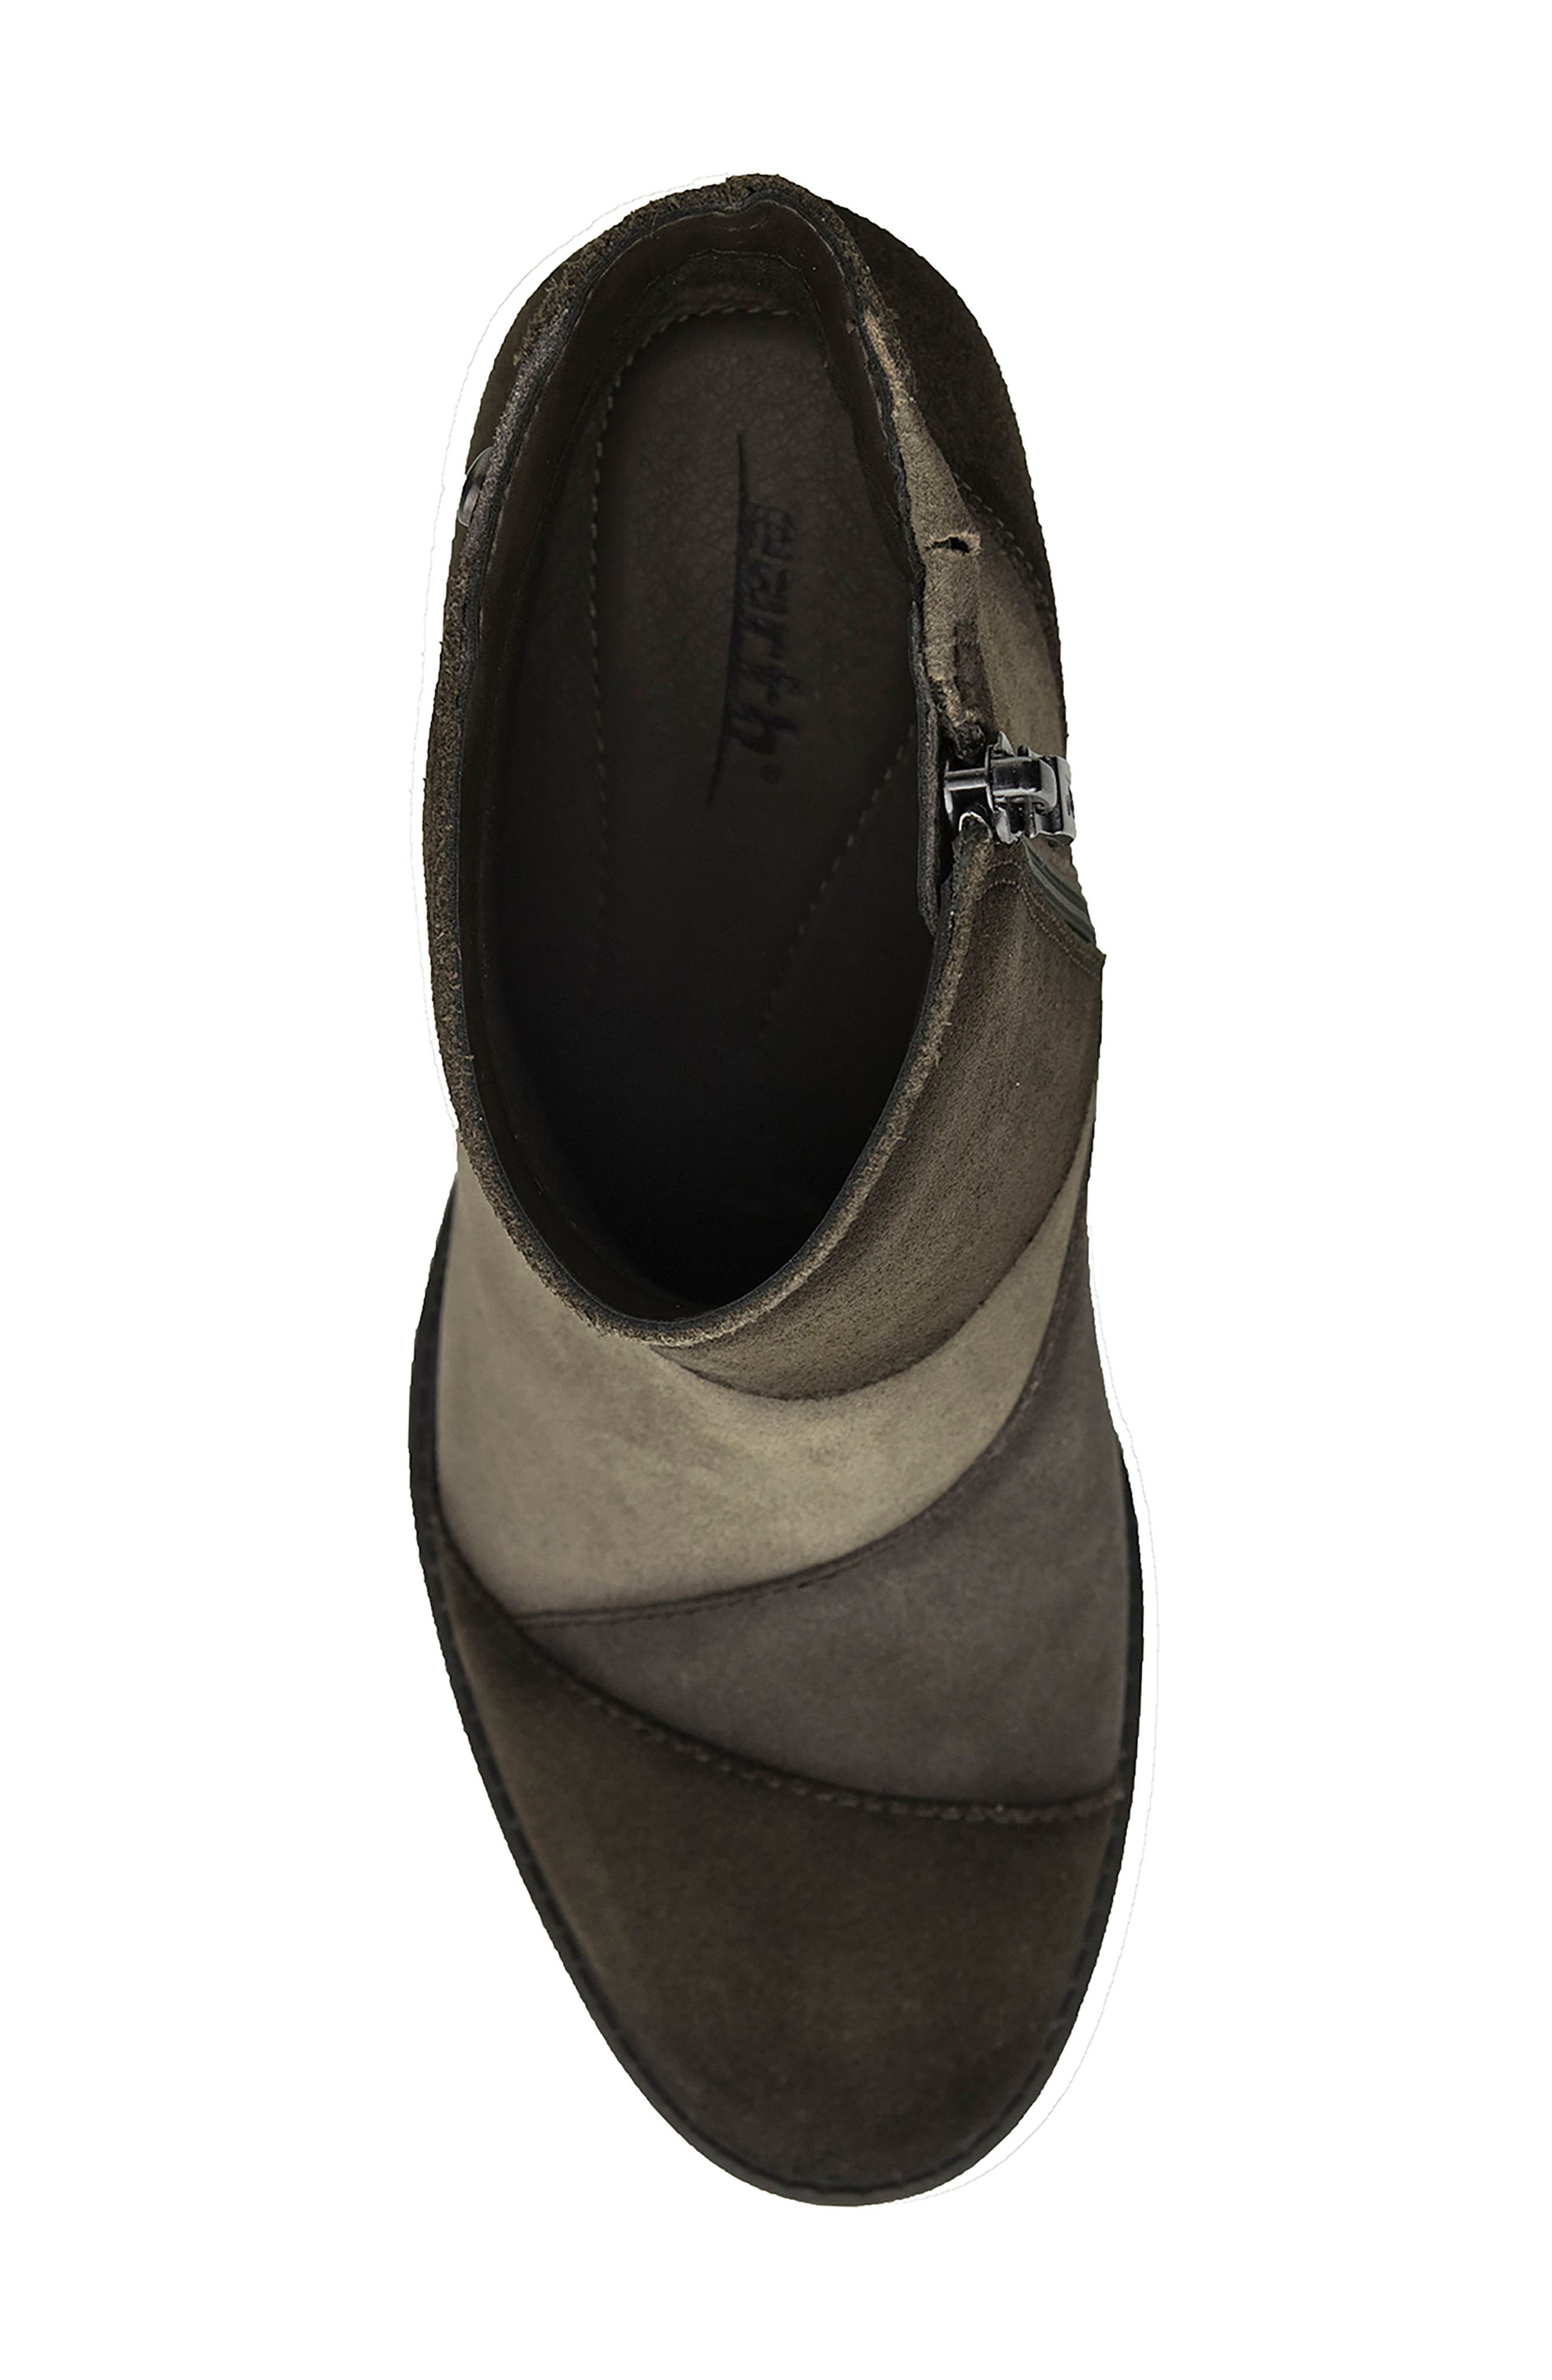 Malta Water Resistant Bootie,                             Alternate thumbnail 5, color,                             Olive Suede